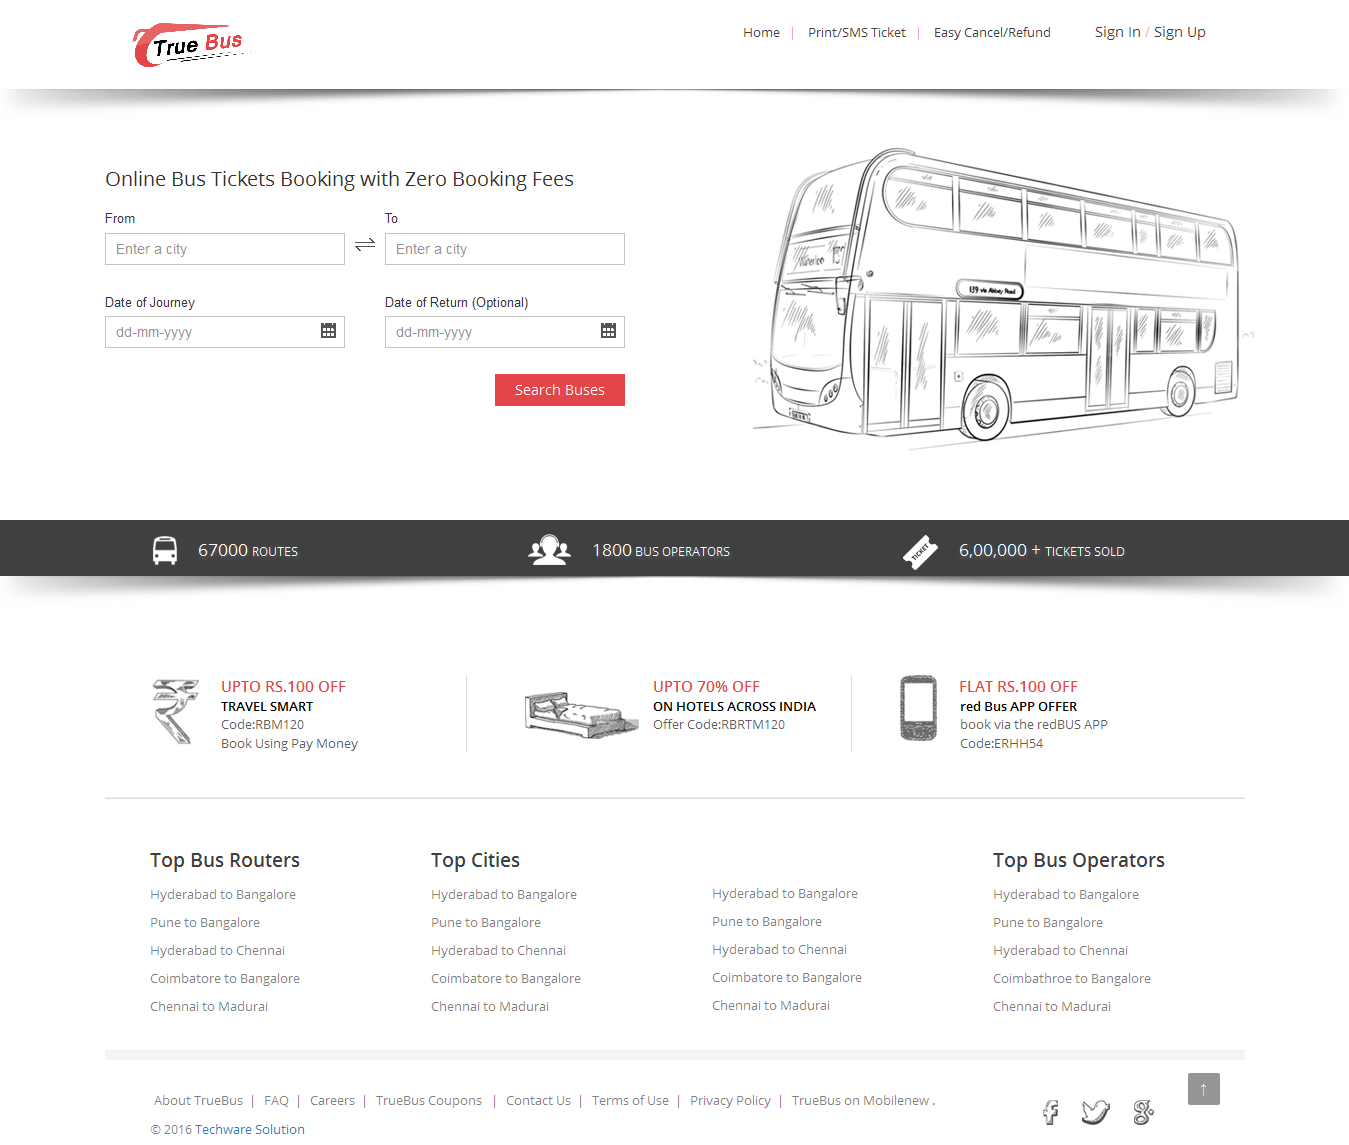 Online Bus Ticket Booking And Reservation System  True Bus  Bus Ticket Template